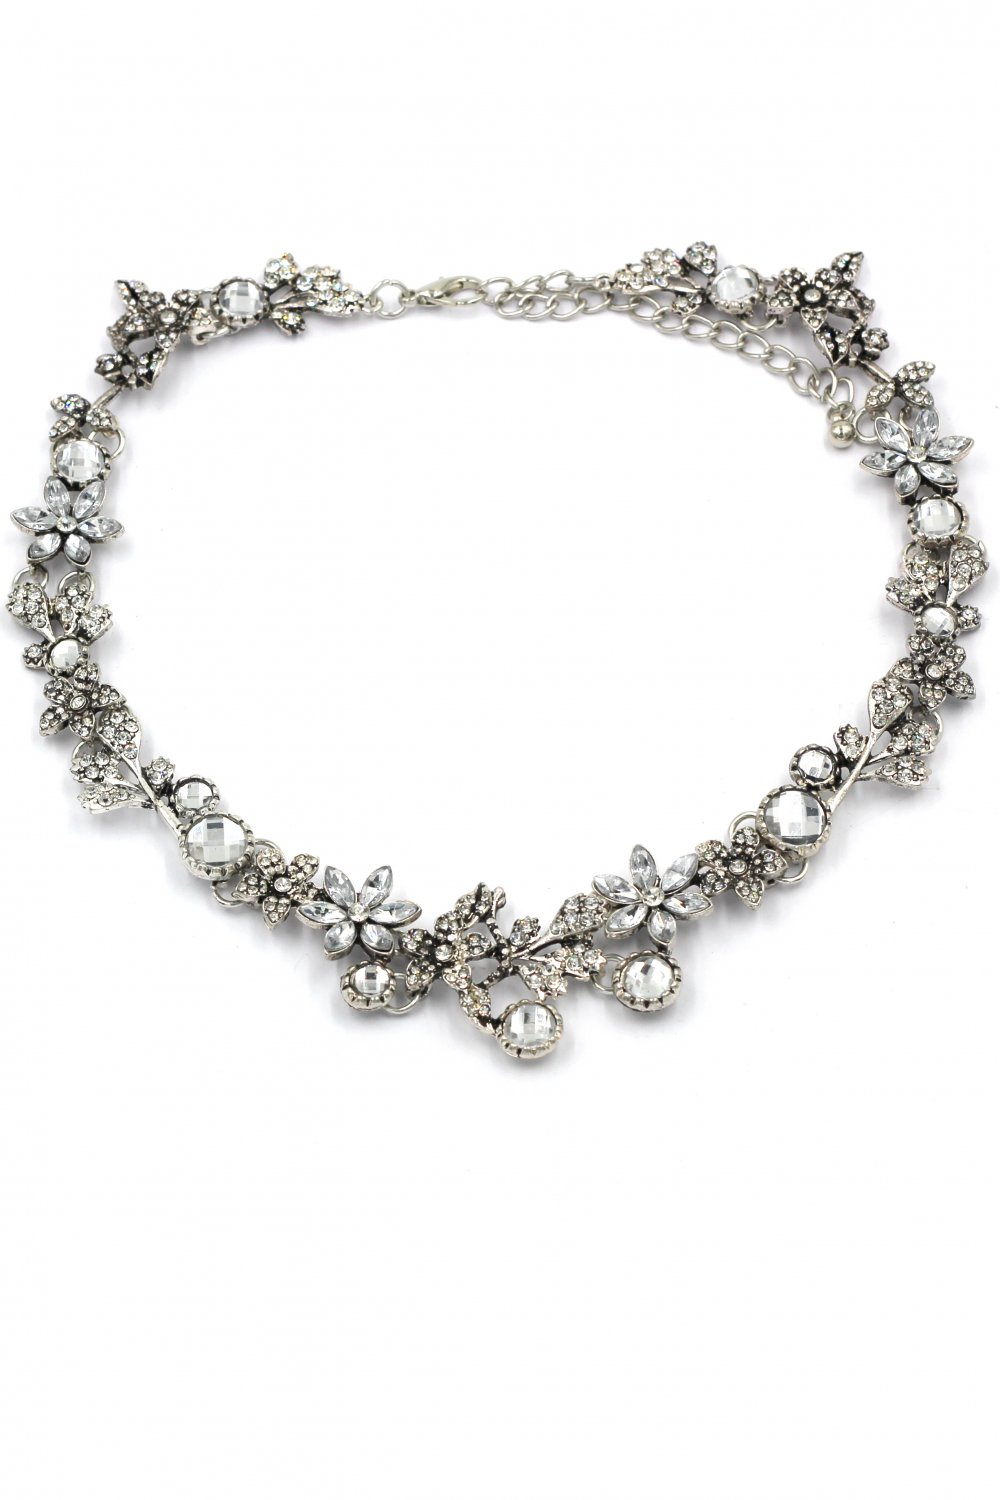 Pretty wreath crystal silver necklace